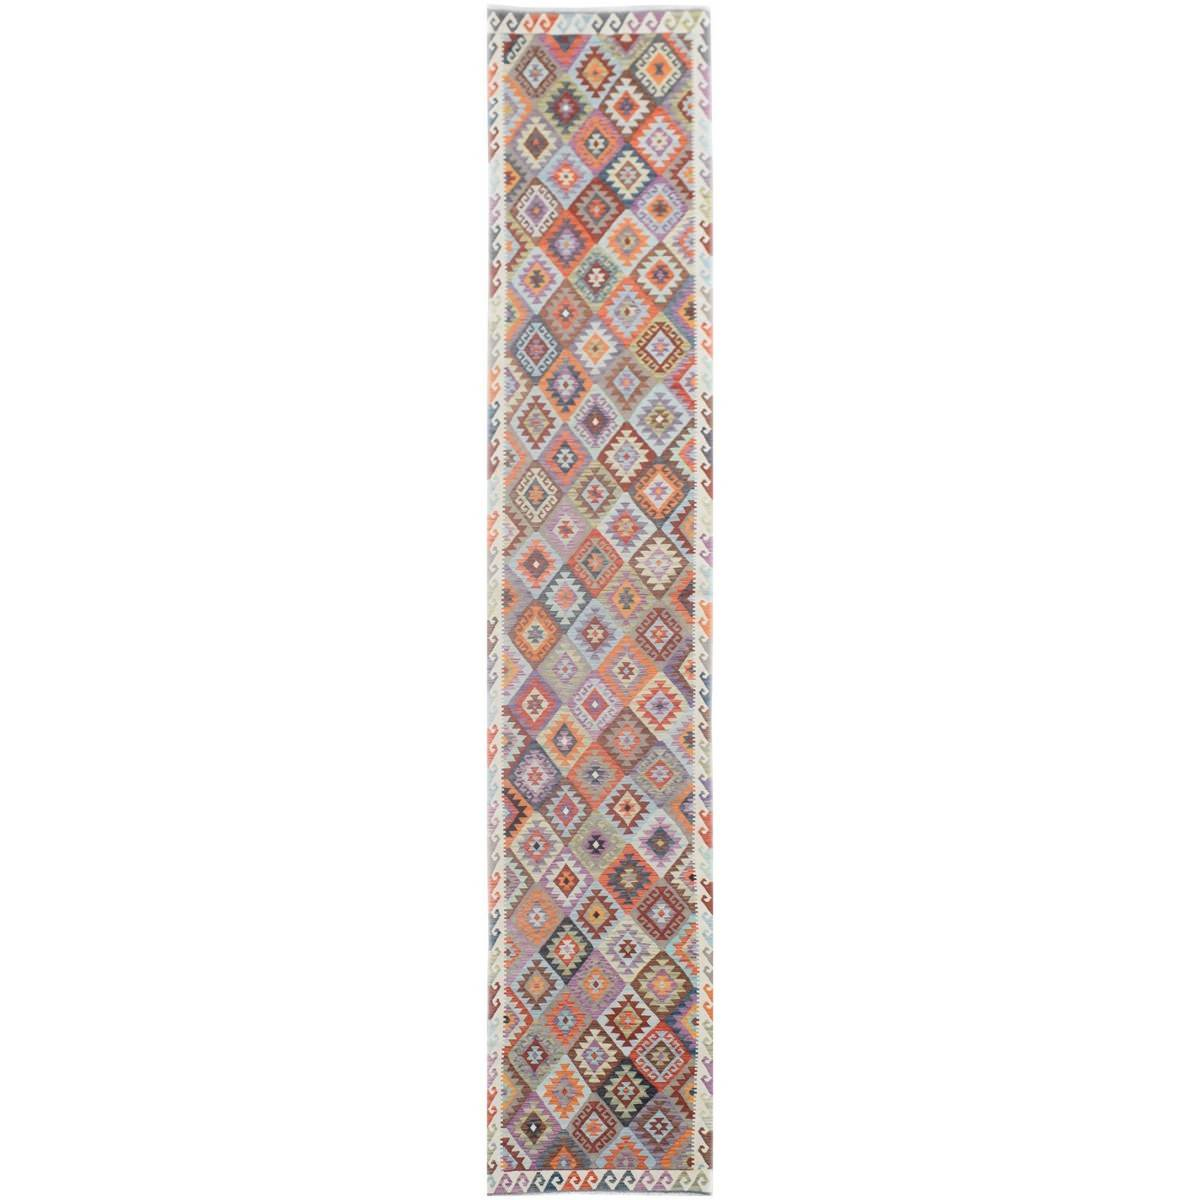 One of A Kind Petra Hand Knotted Wool Maimana Kilim Runner Rug, 477x80cm